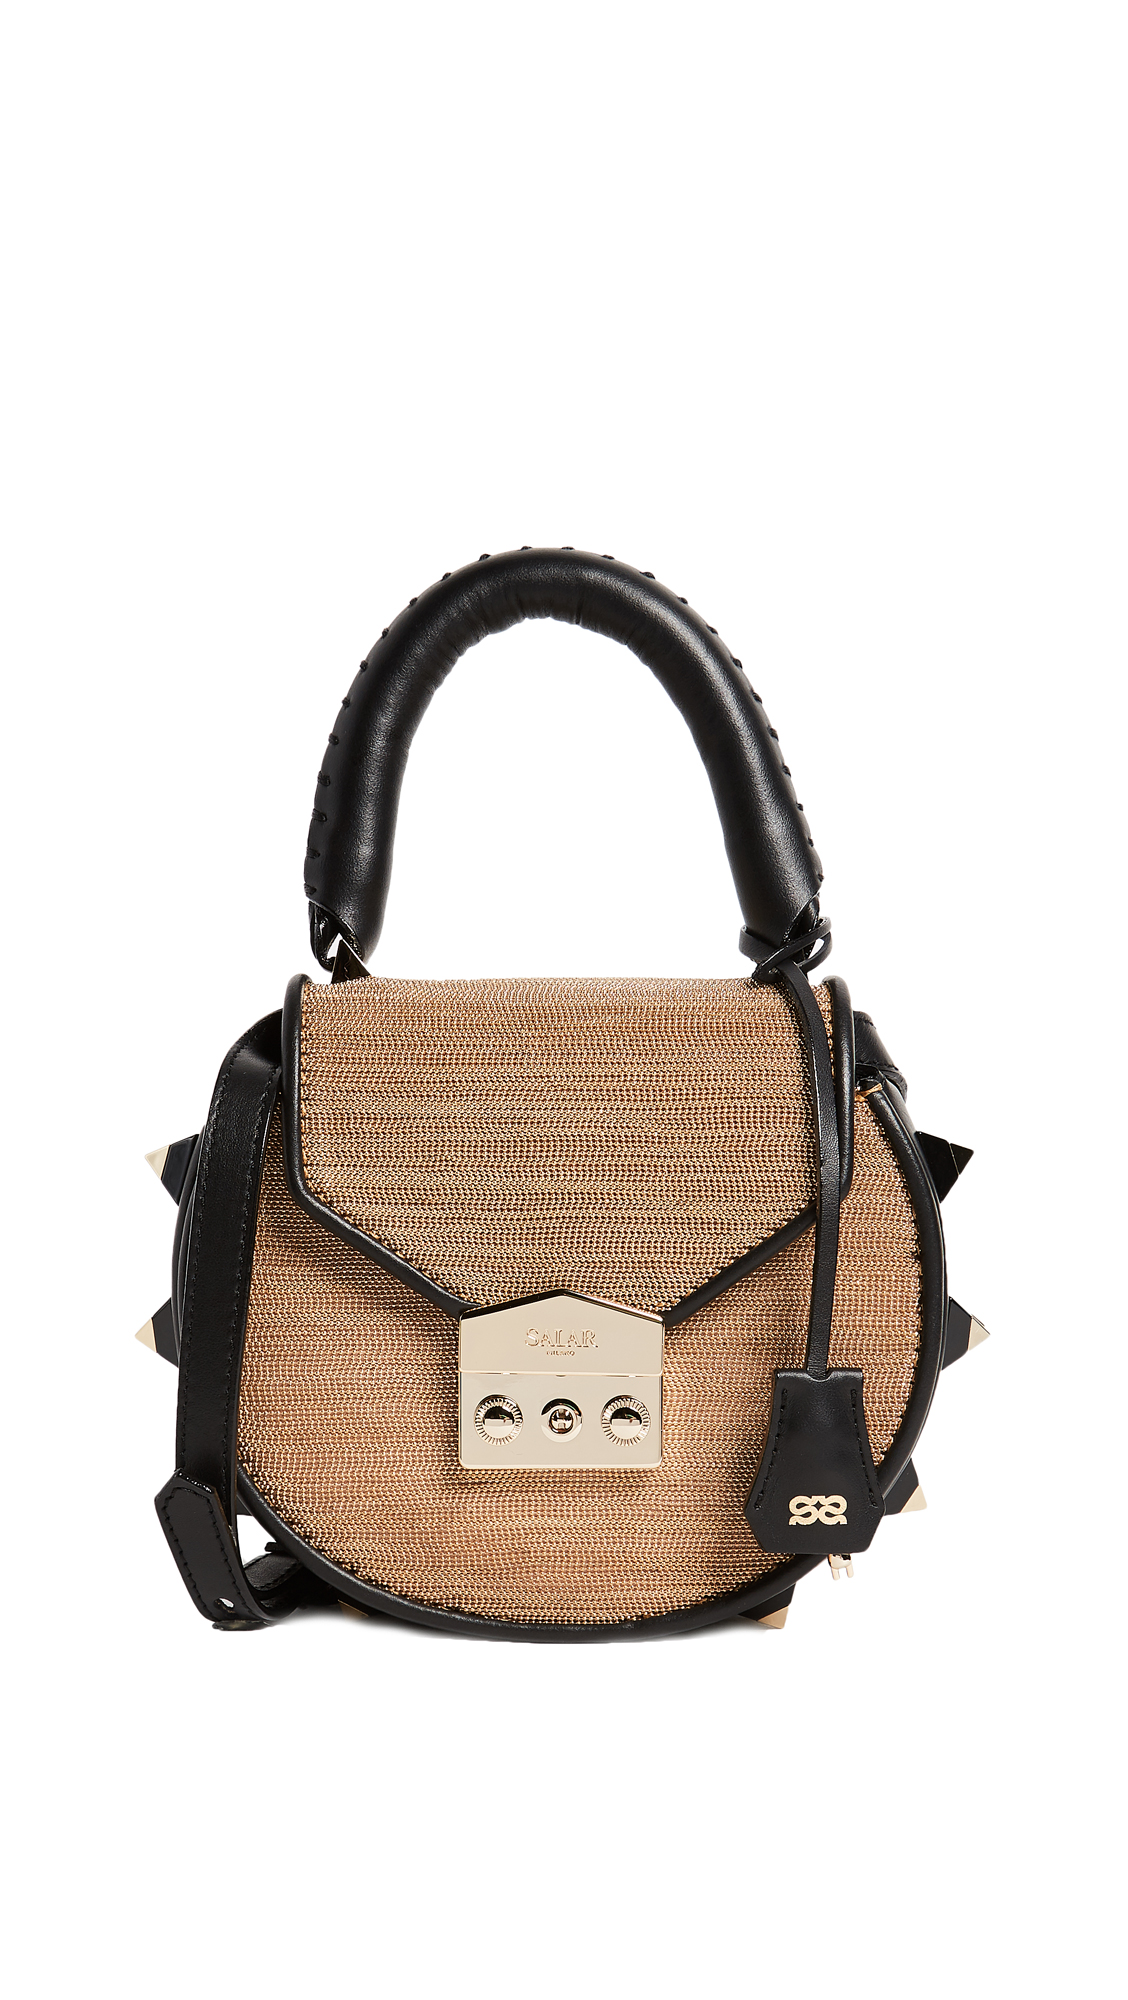 Salar MIMI DISCO CROSS BODY BAG